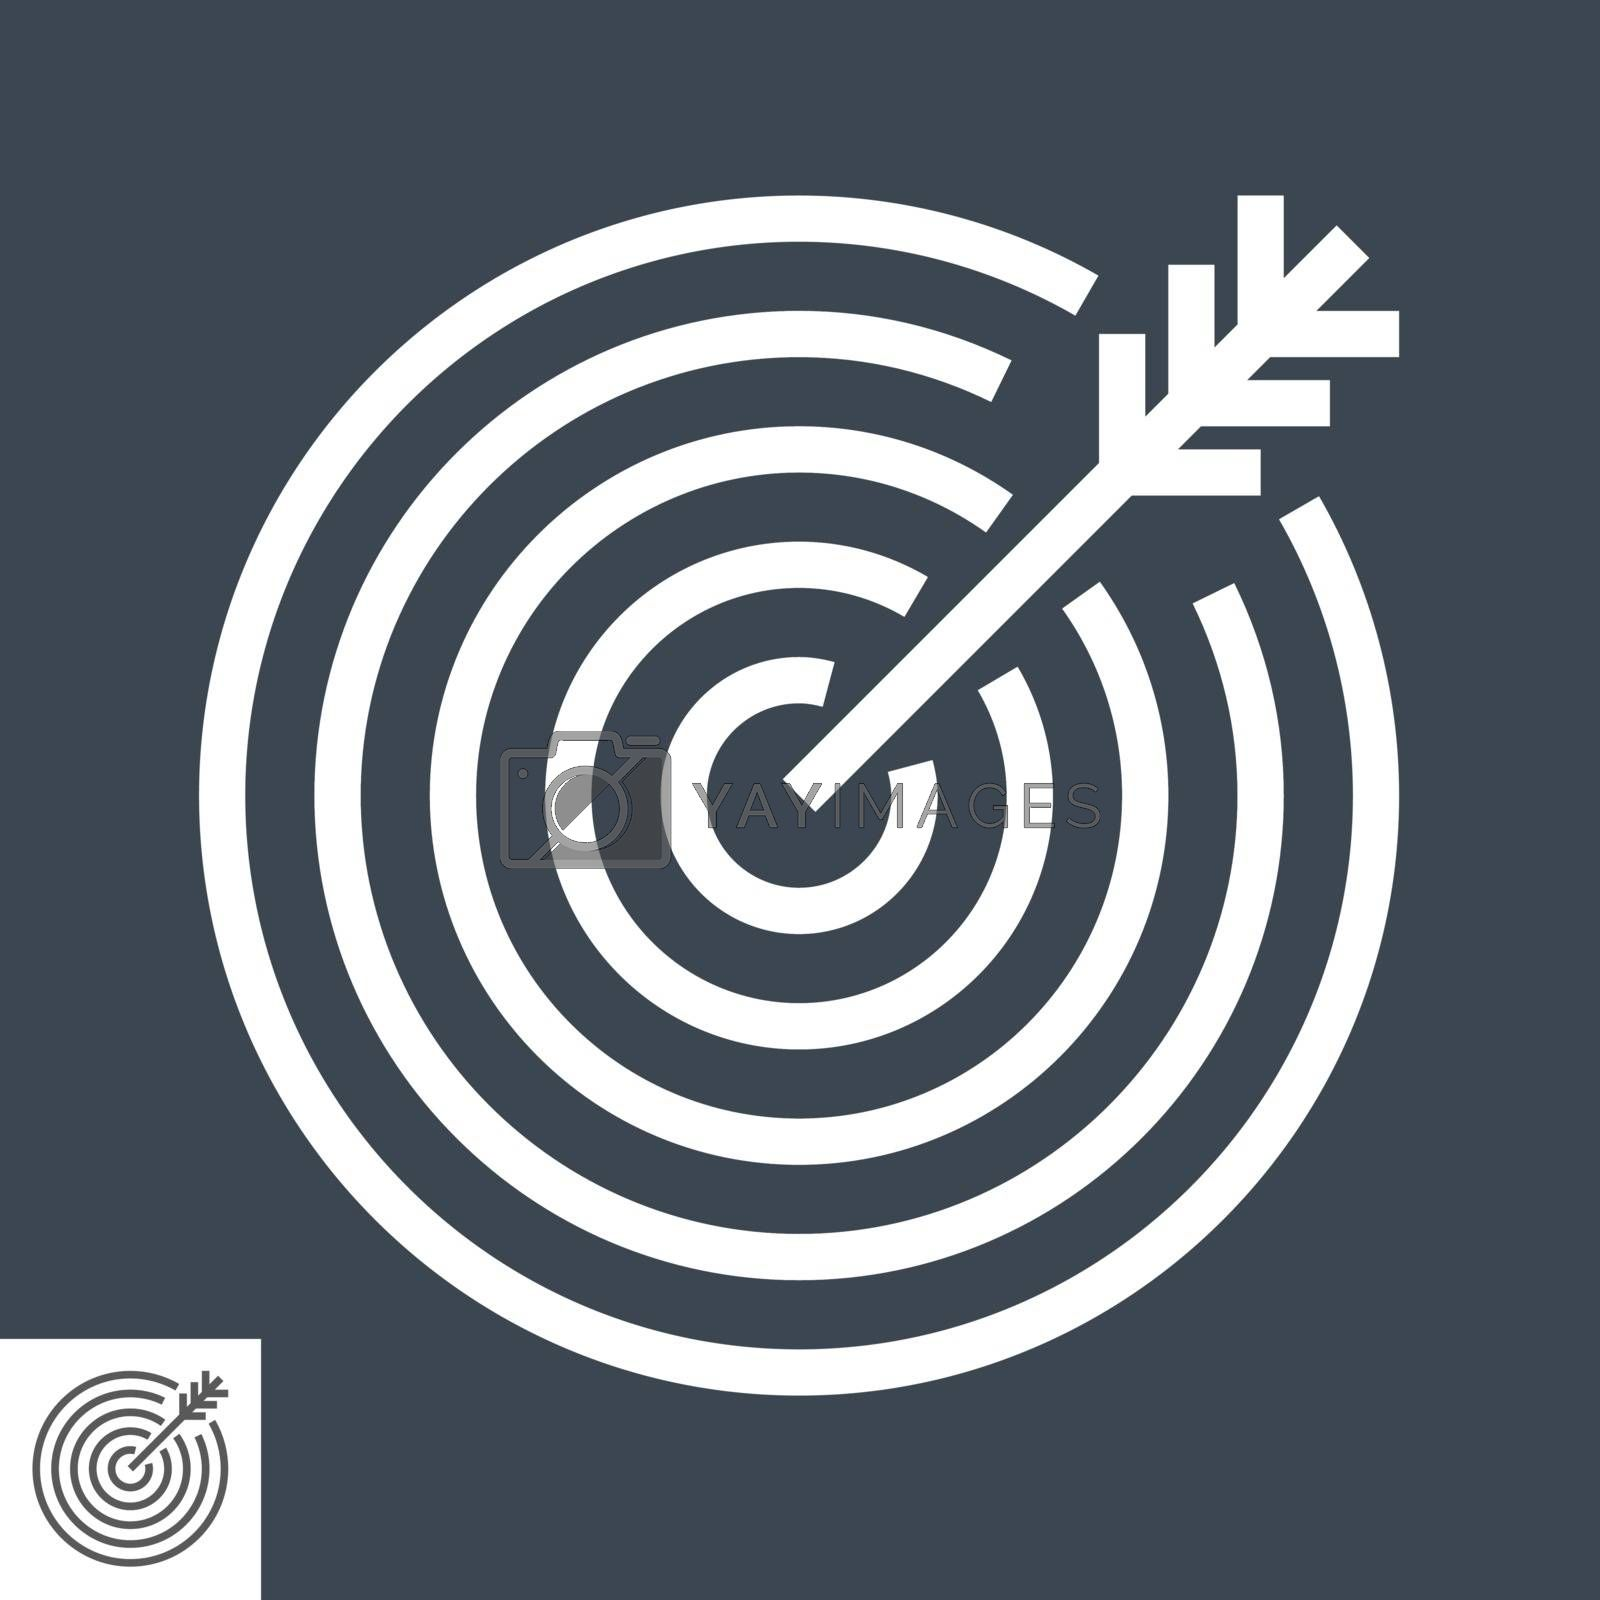 Target Thin Line Vector Icon. Flat icon isolated on the black background. Editable EPS file. Vector illustration.